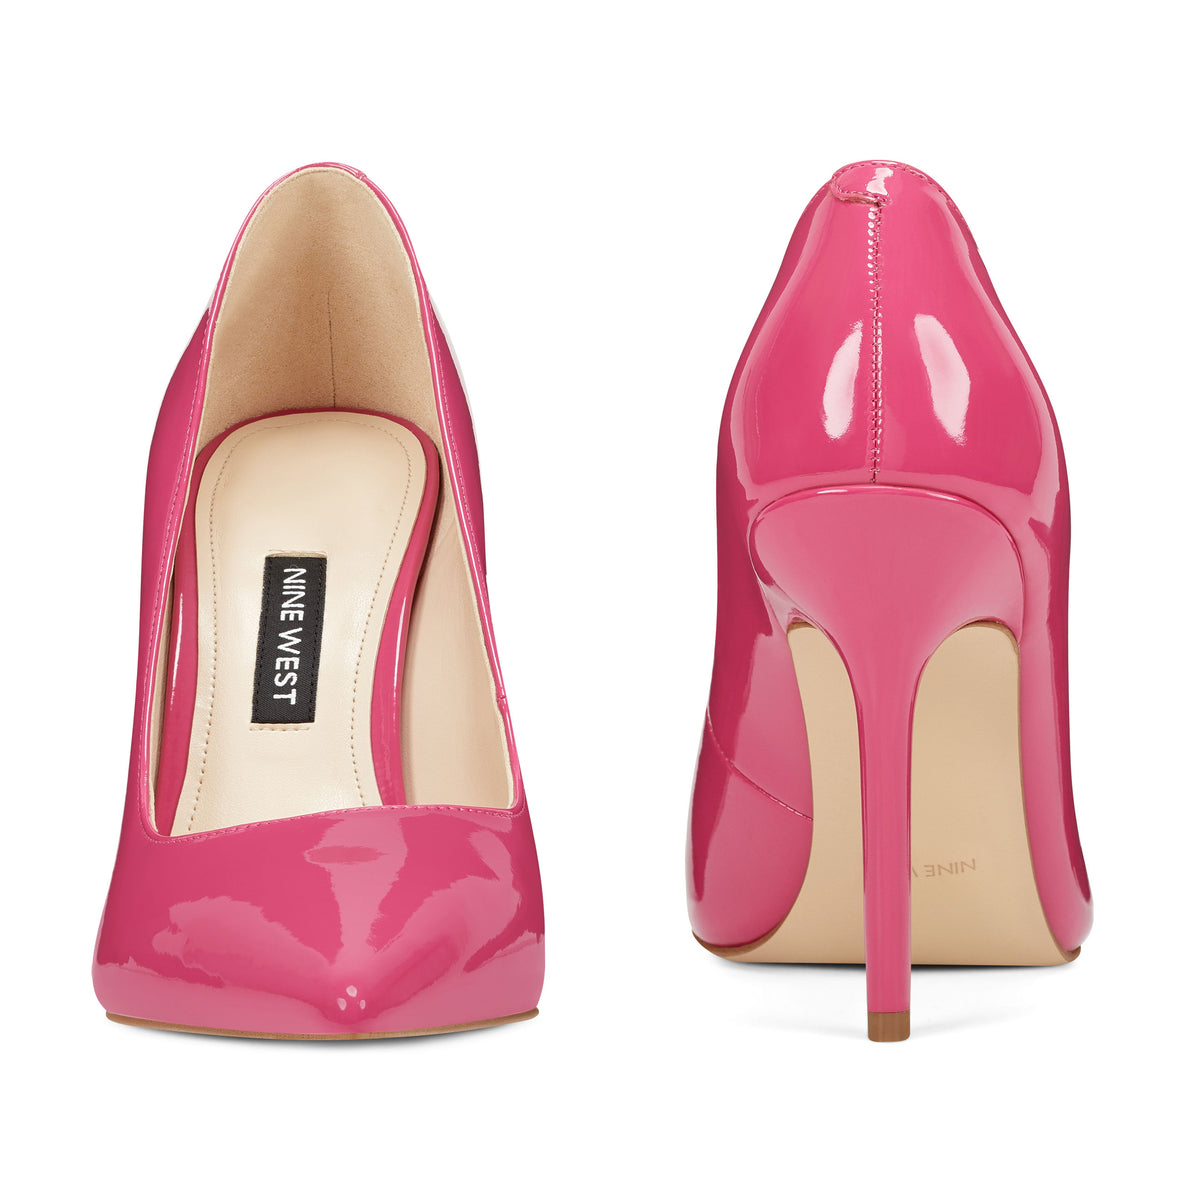 bliss-pointy-toe-pumps-in-dark-pink